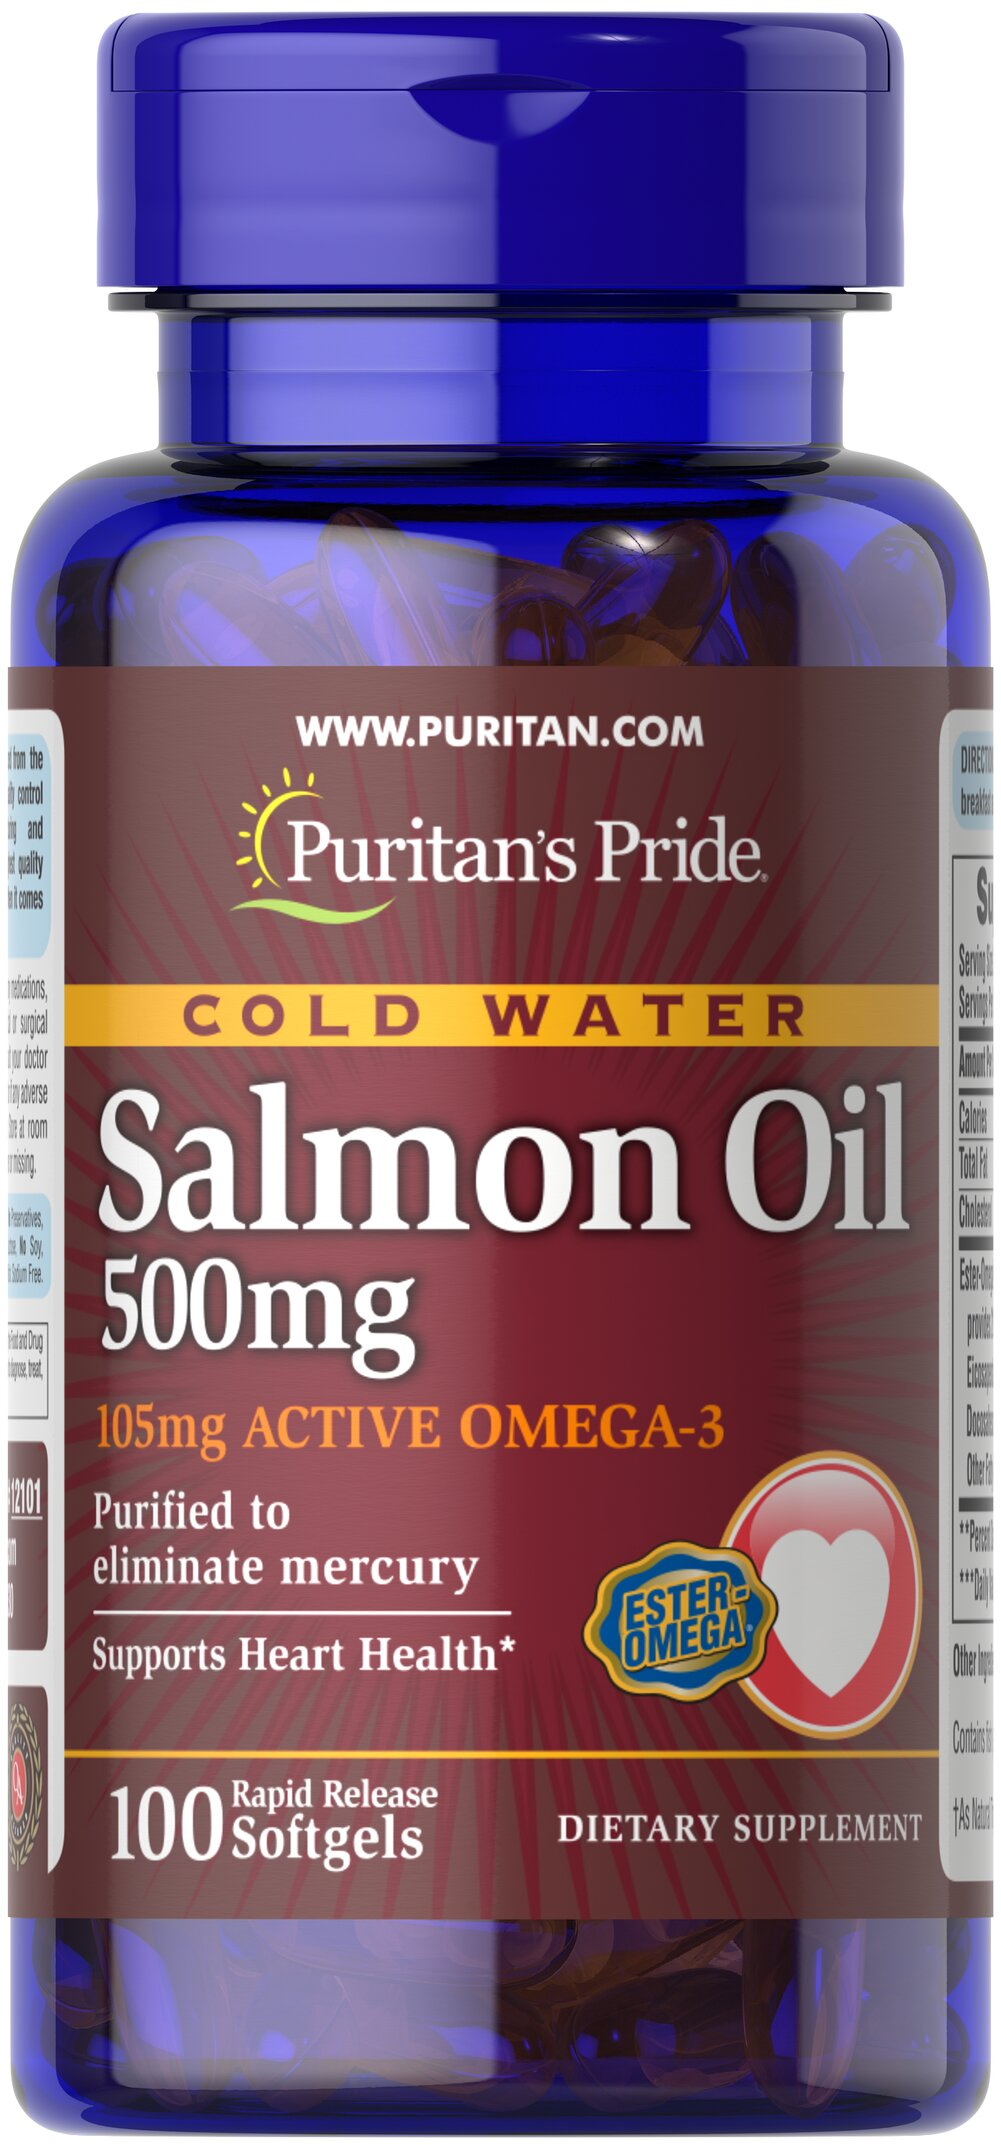 Omega-3 Salmon Oil 500 mg <p><b>Purified to Eliminate Mercury</b></p> <p>Puritan's Pride Salmon Oil contains the finest Salmon Oil available. Take two softgels two times a day to gain the essential fatty acids your body needs for good health.** Salmon contains a high concentration of Omega-3 fatty acids that have been shown to help promote metabolic, circulatory and heart health.**</p> 100 Softgels 500 mg $8.99